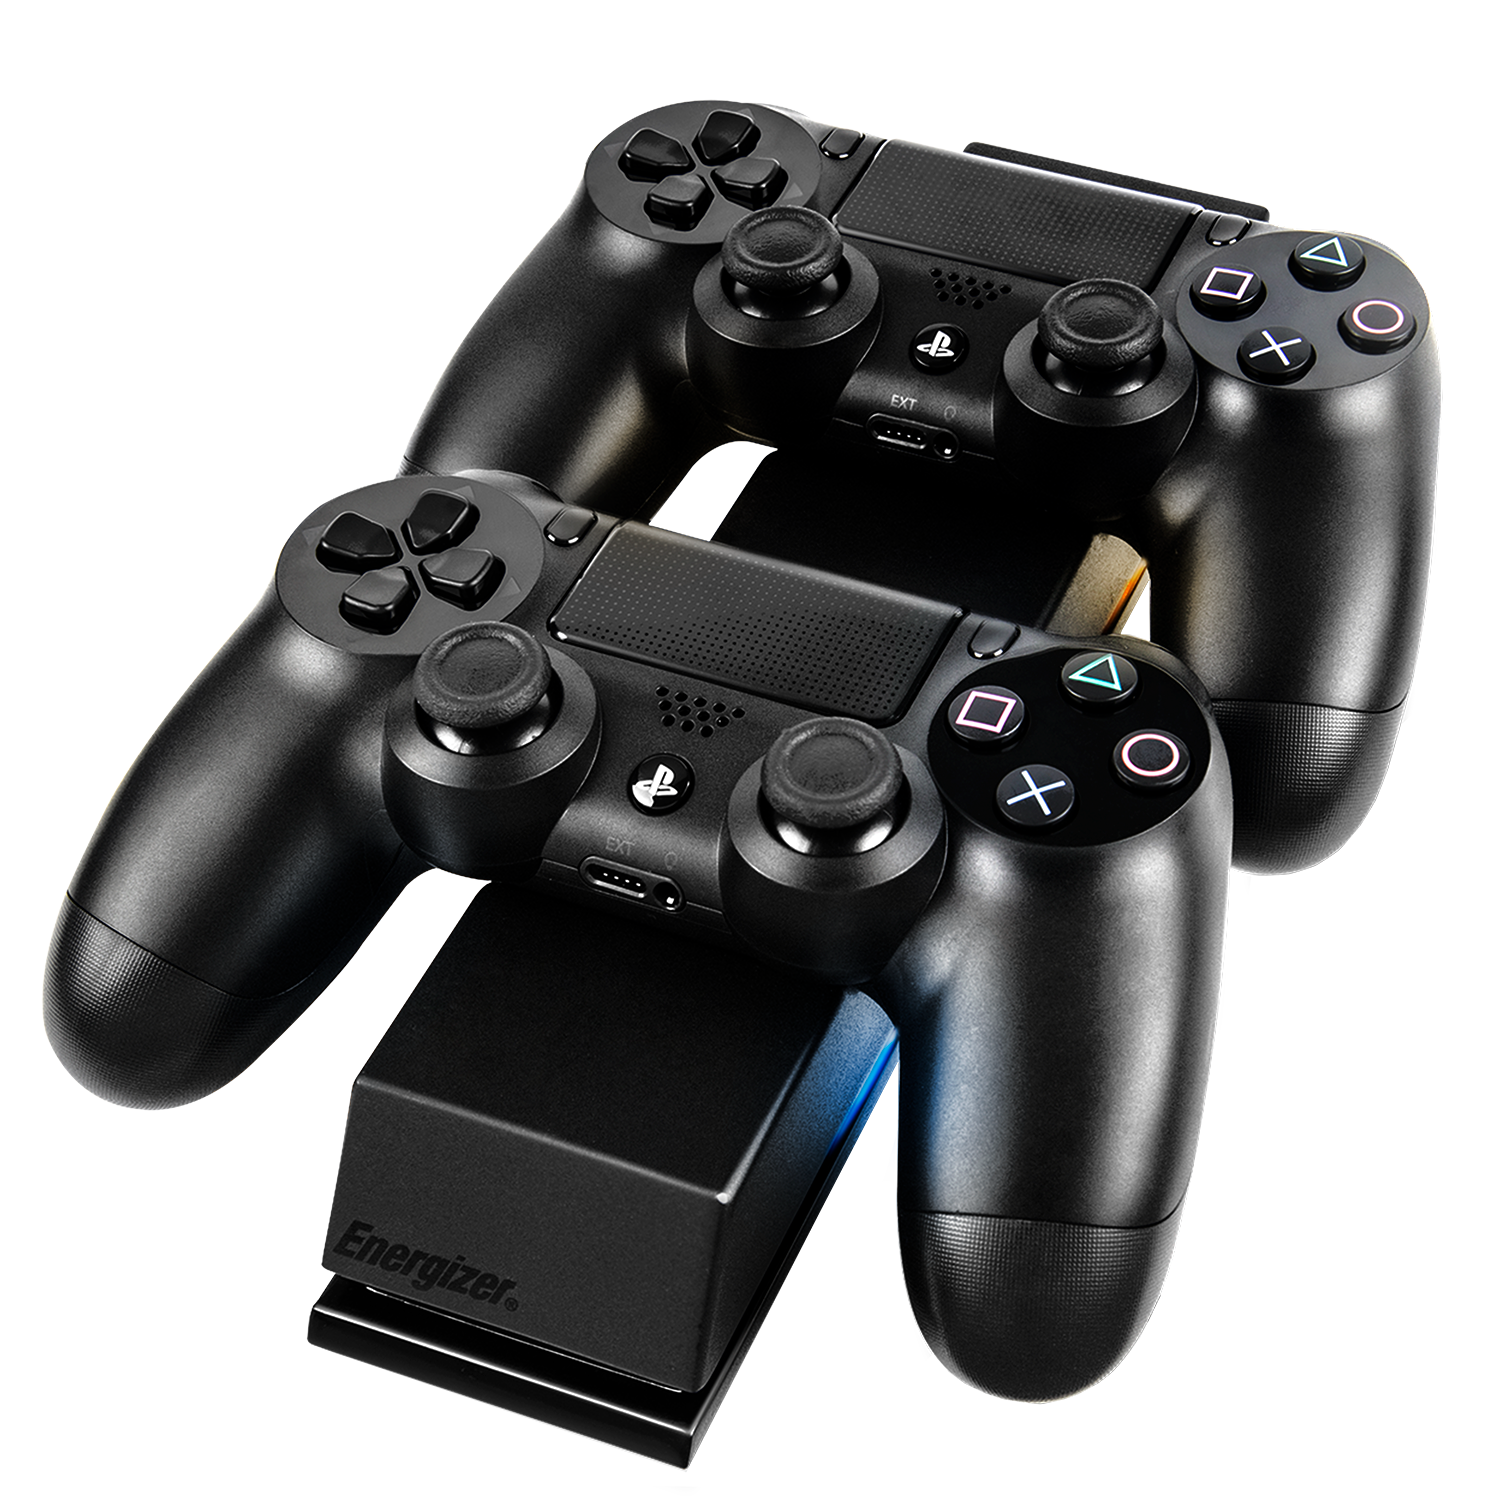 pdp energizer ps4 controller charger with rechargeable. Black Bedroom Furniture Sets. Home Design Ideas